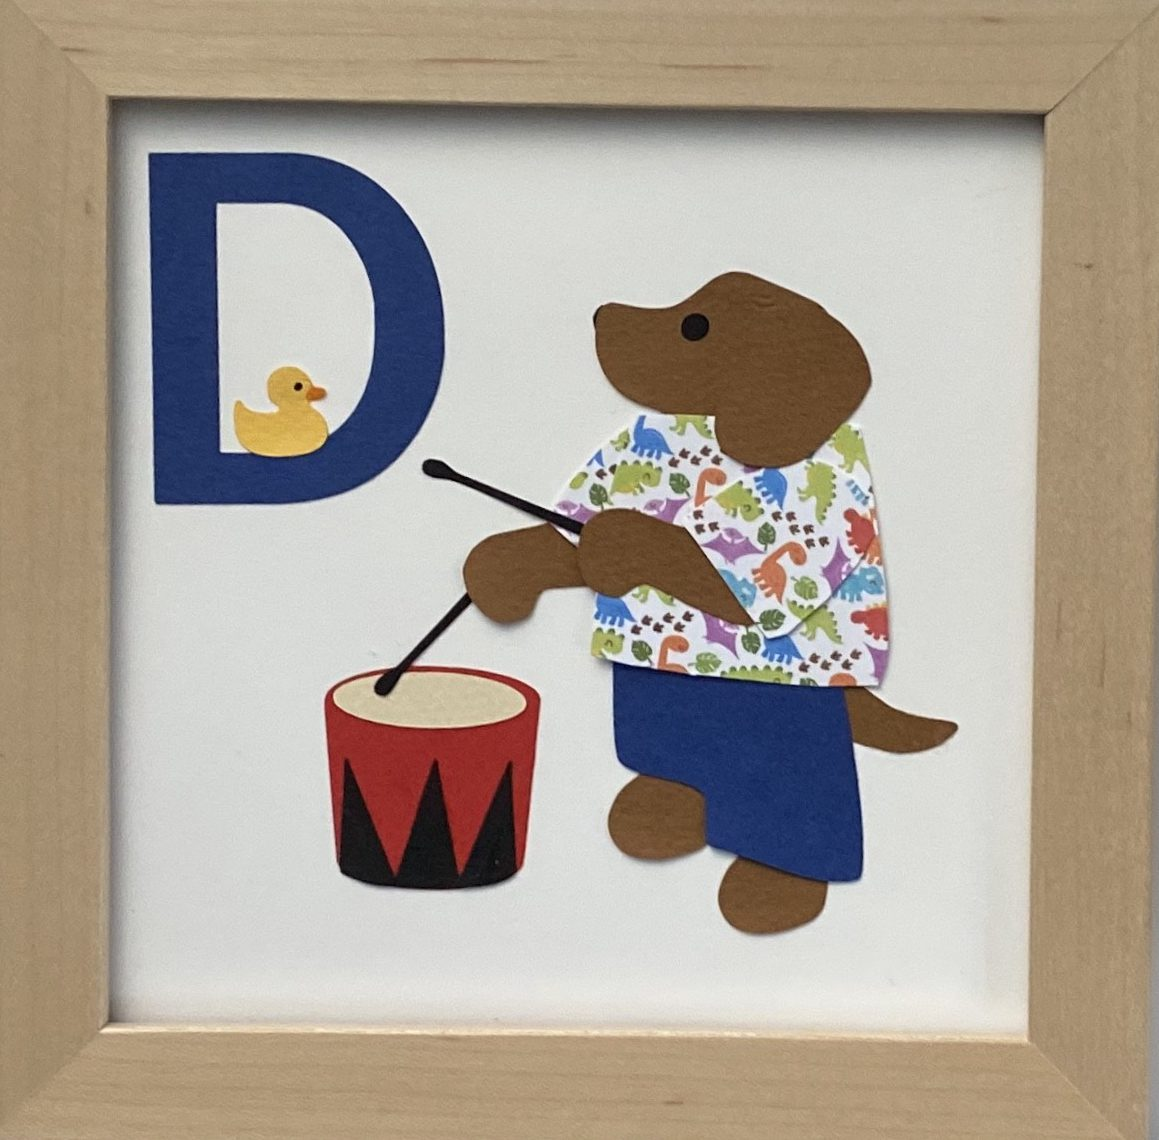 D initial sign - Dog playing drum, with a duck, and a dinosaur shirt